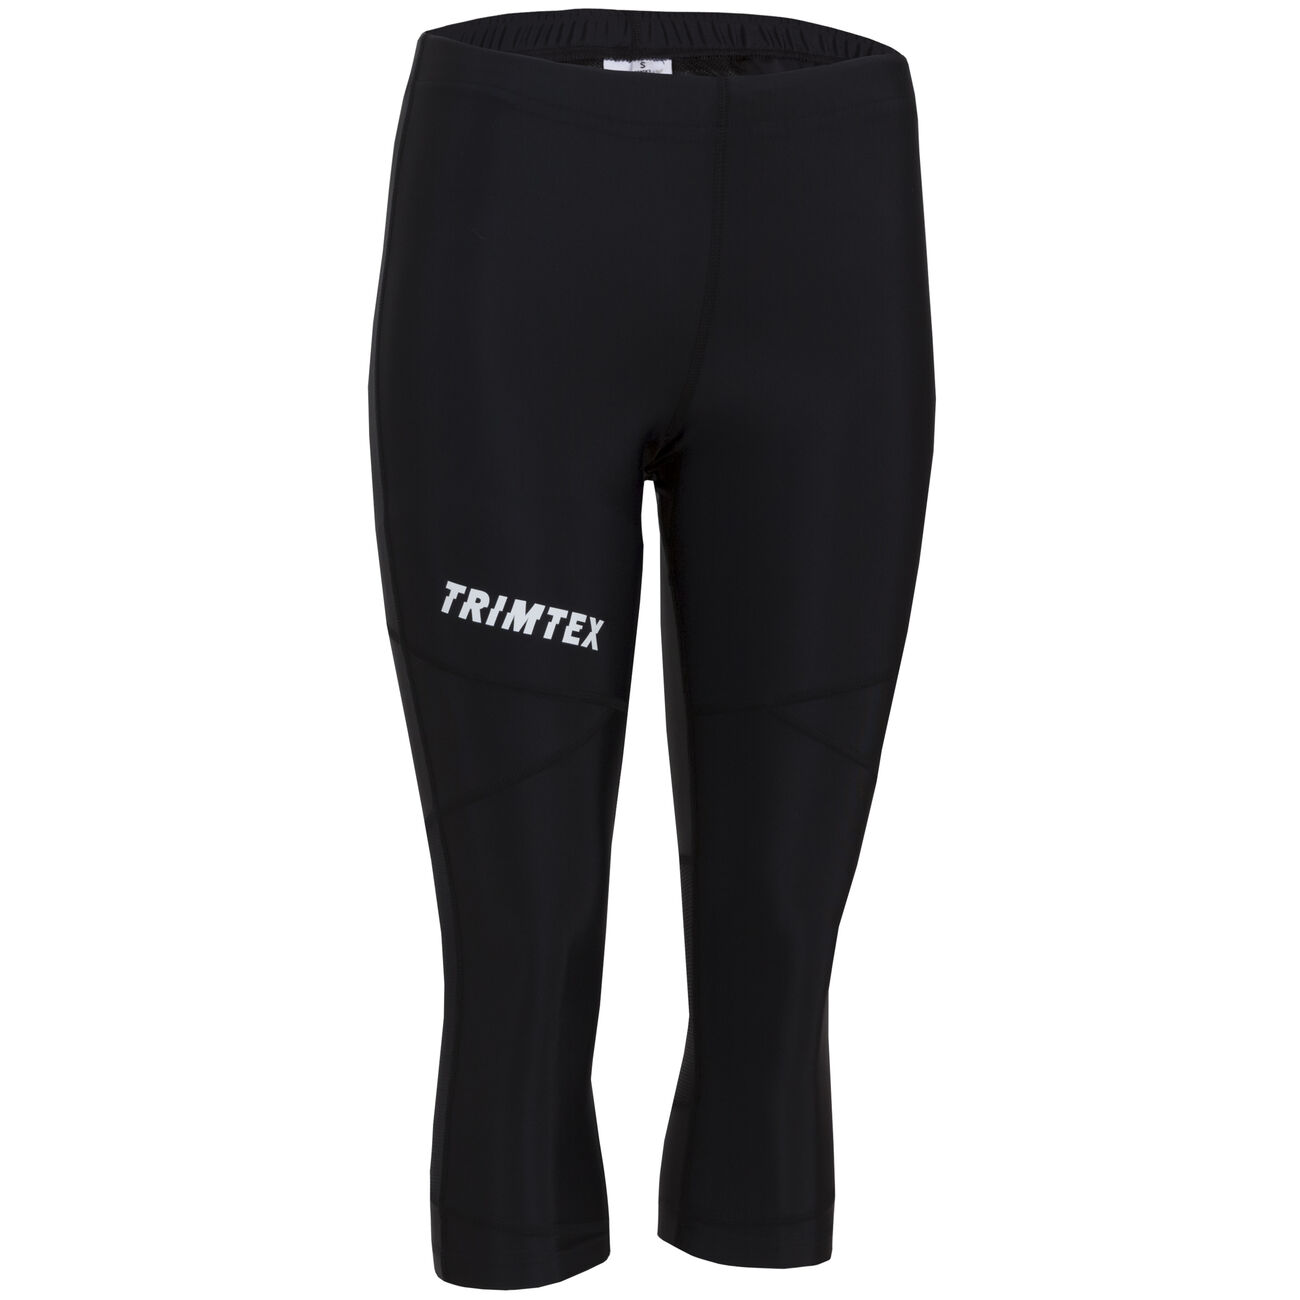 Extreme 3/4 tights women's